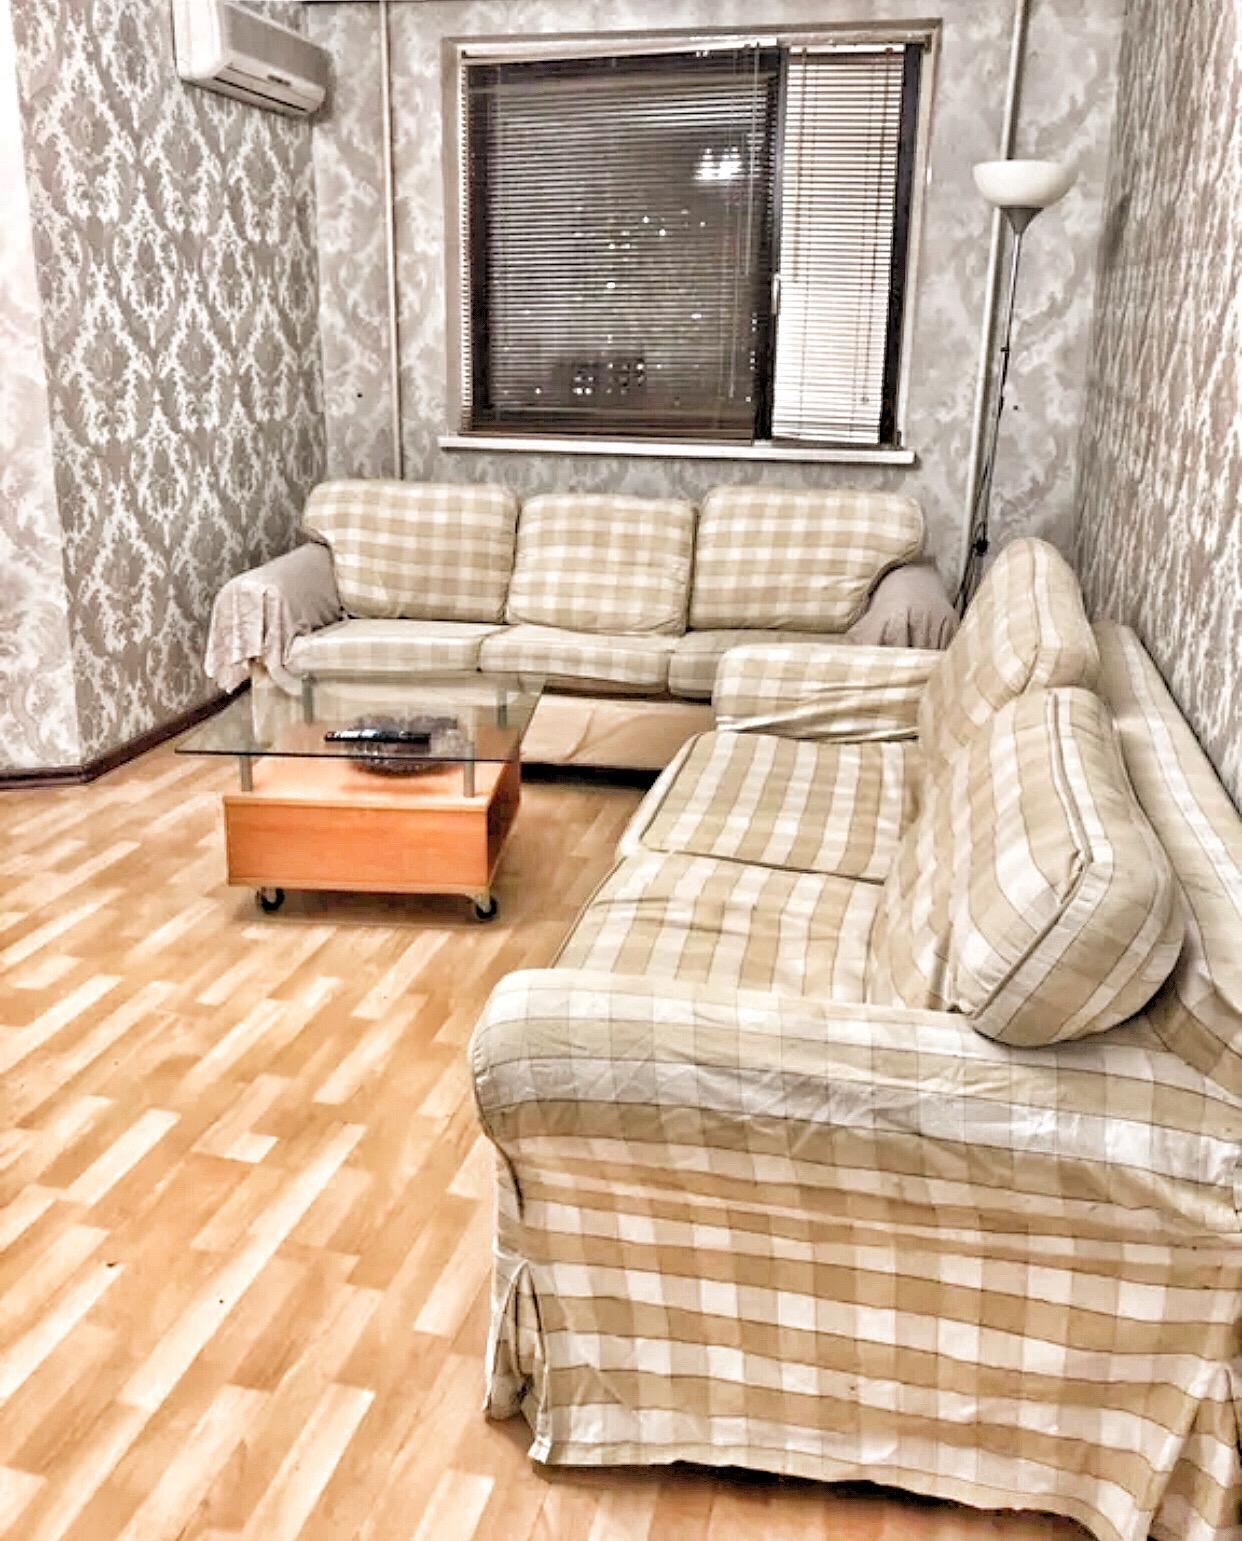 Apartment, 3 rooms, 70 m2 in Moscow 89261741798 buy 1